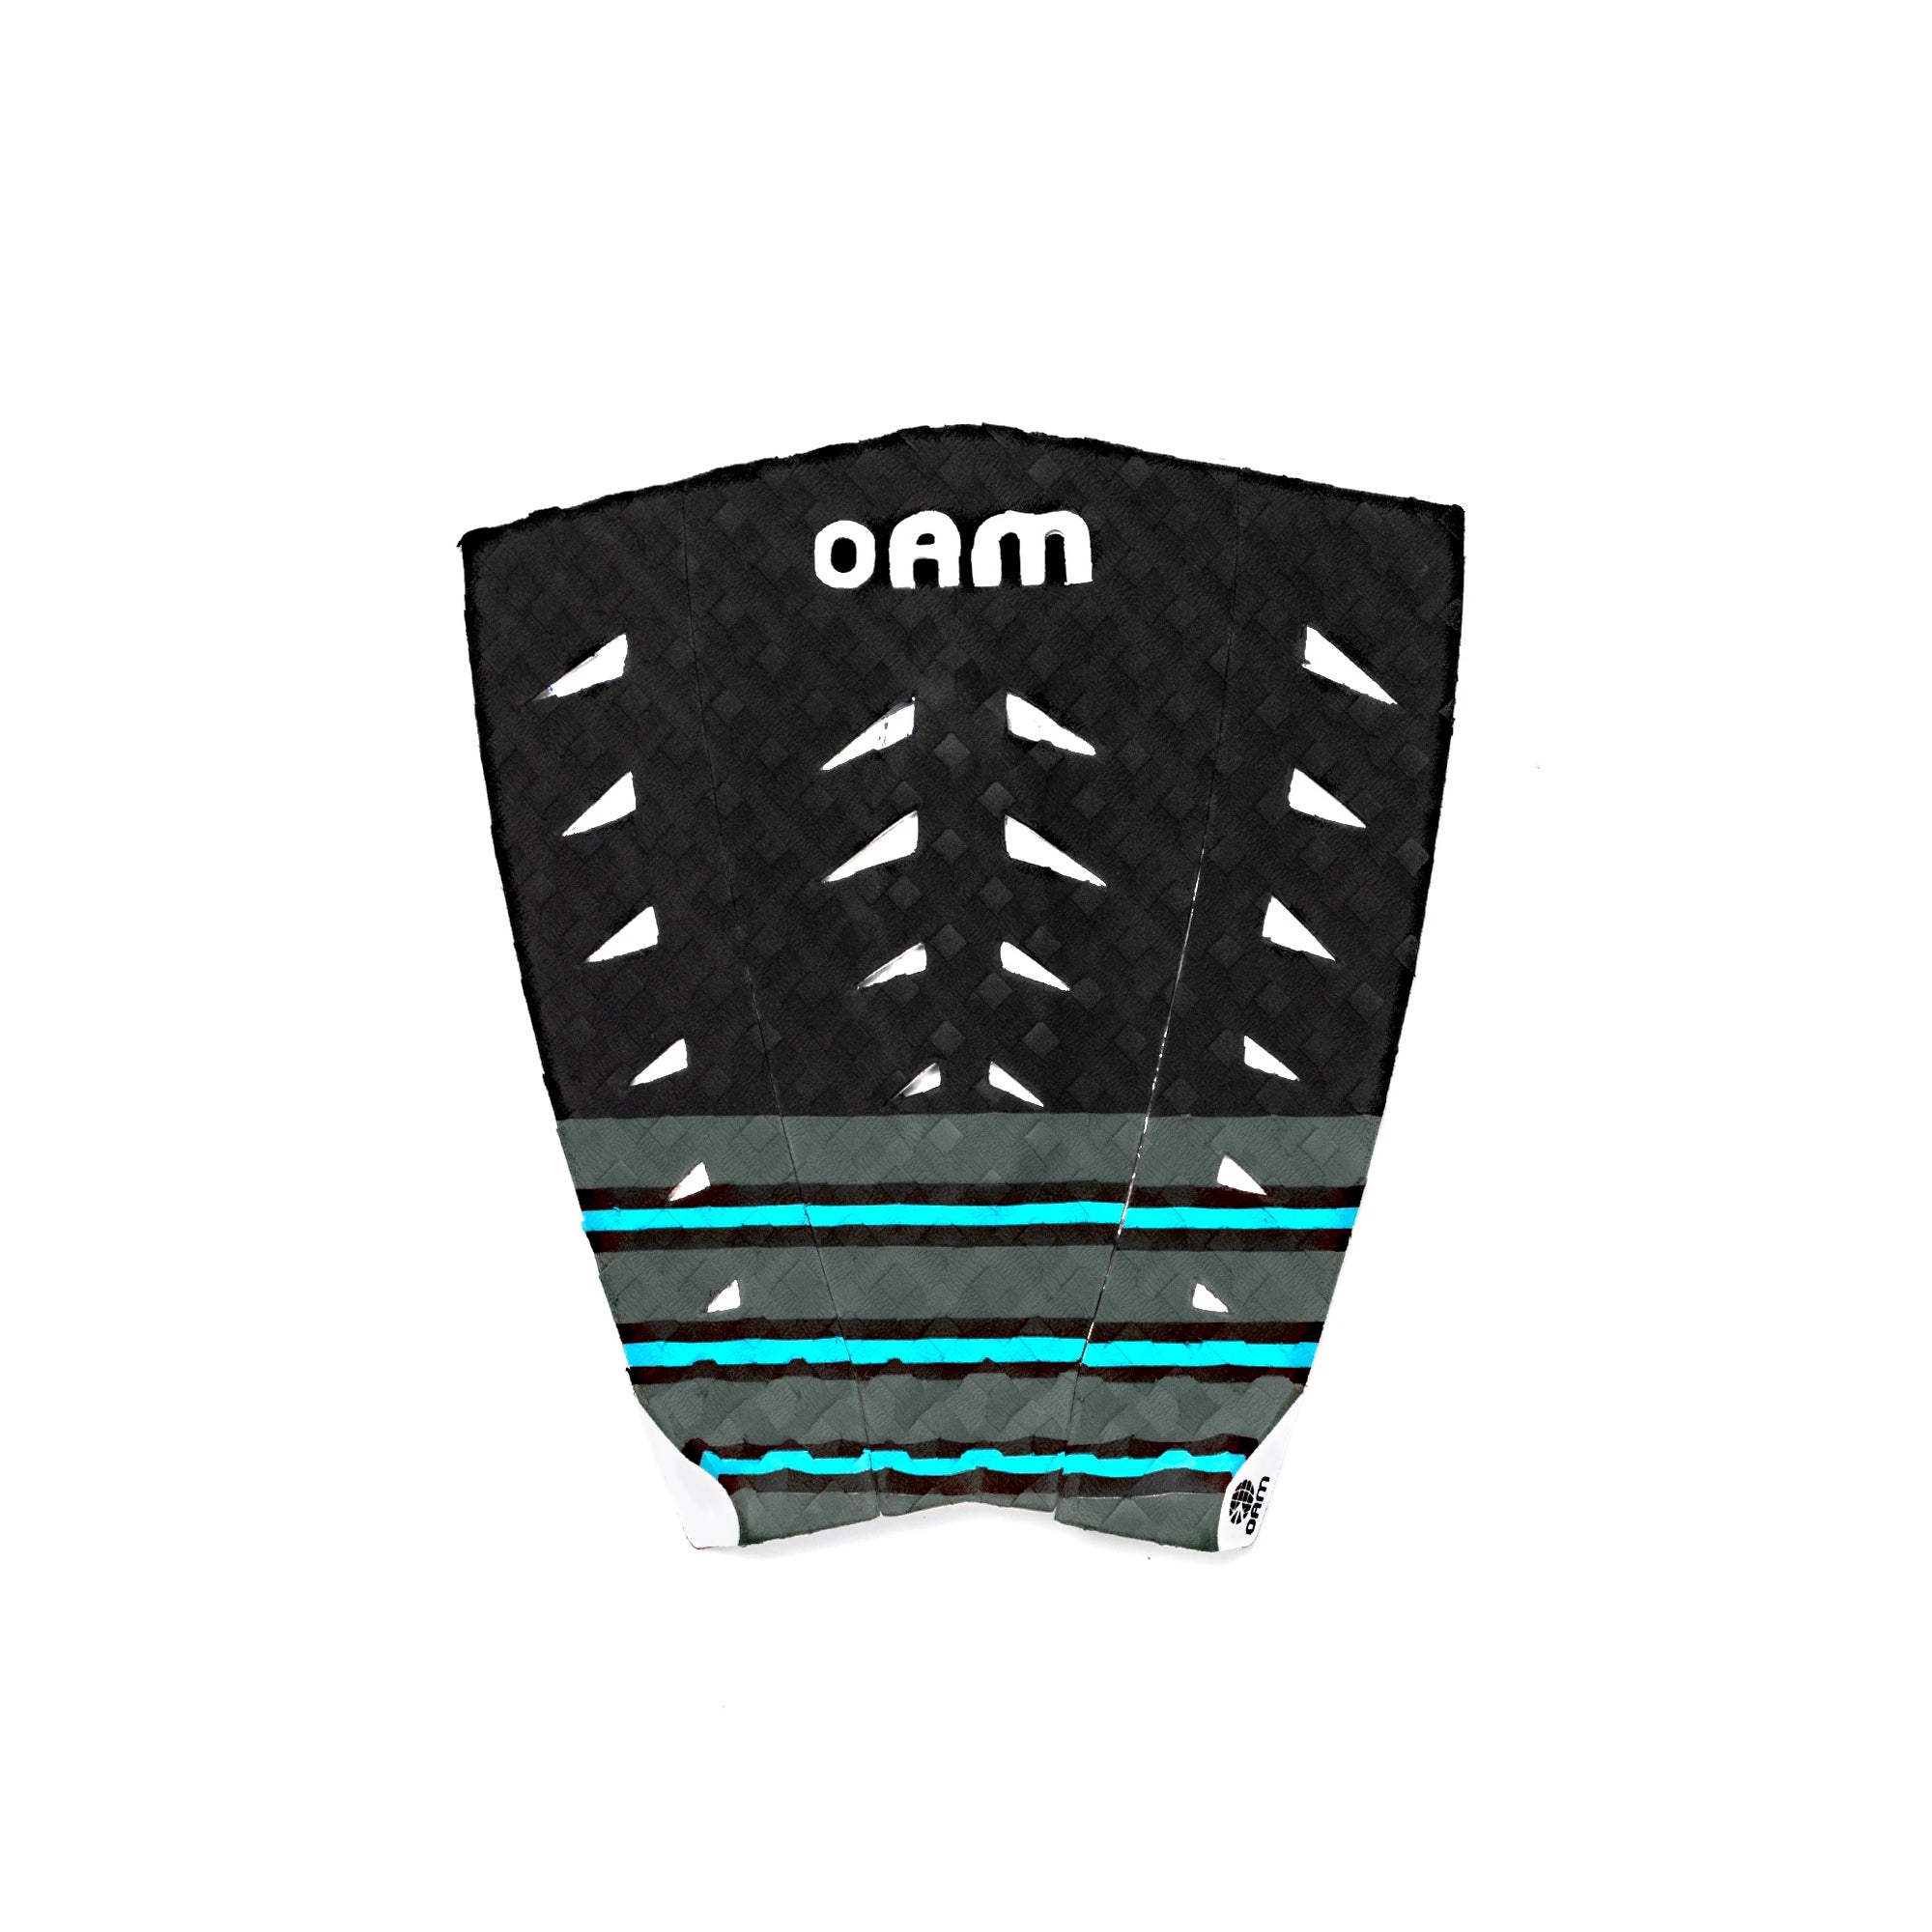 OAM Michel Bourez Signature Traction Pad